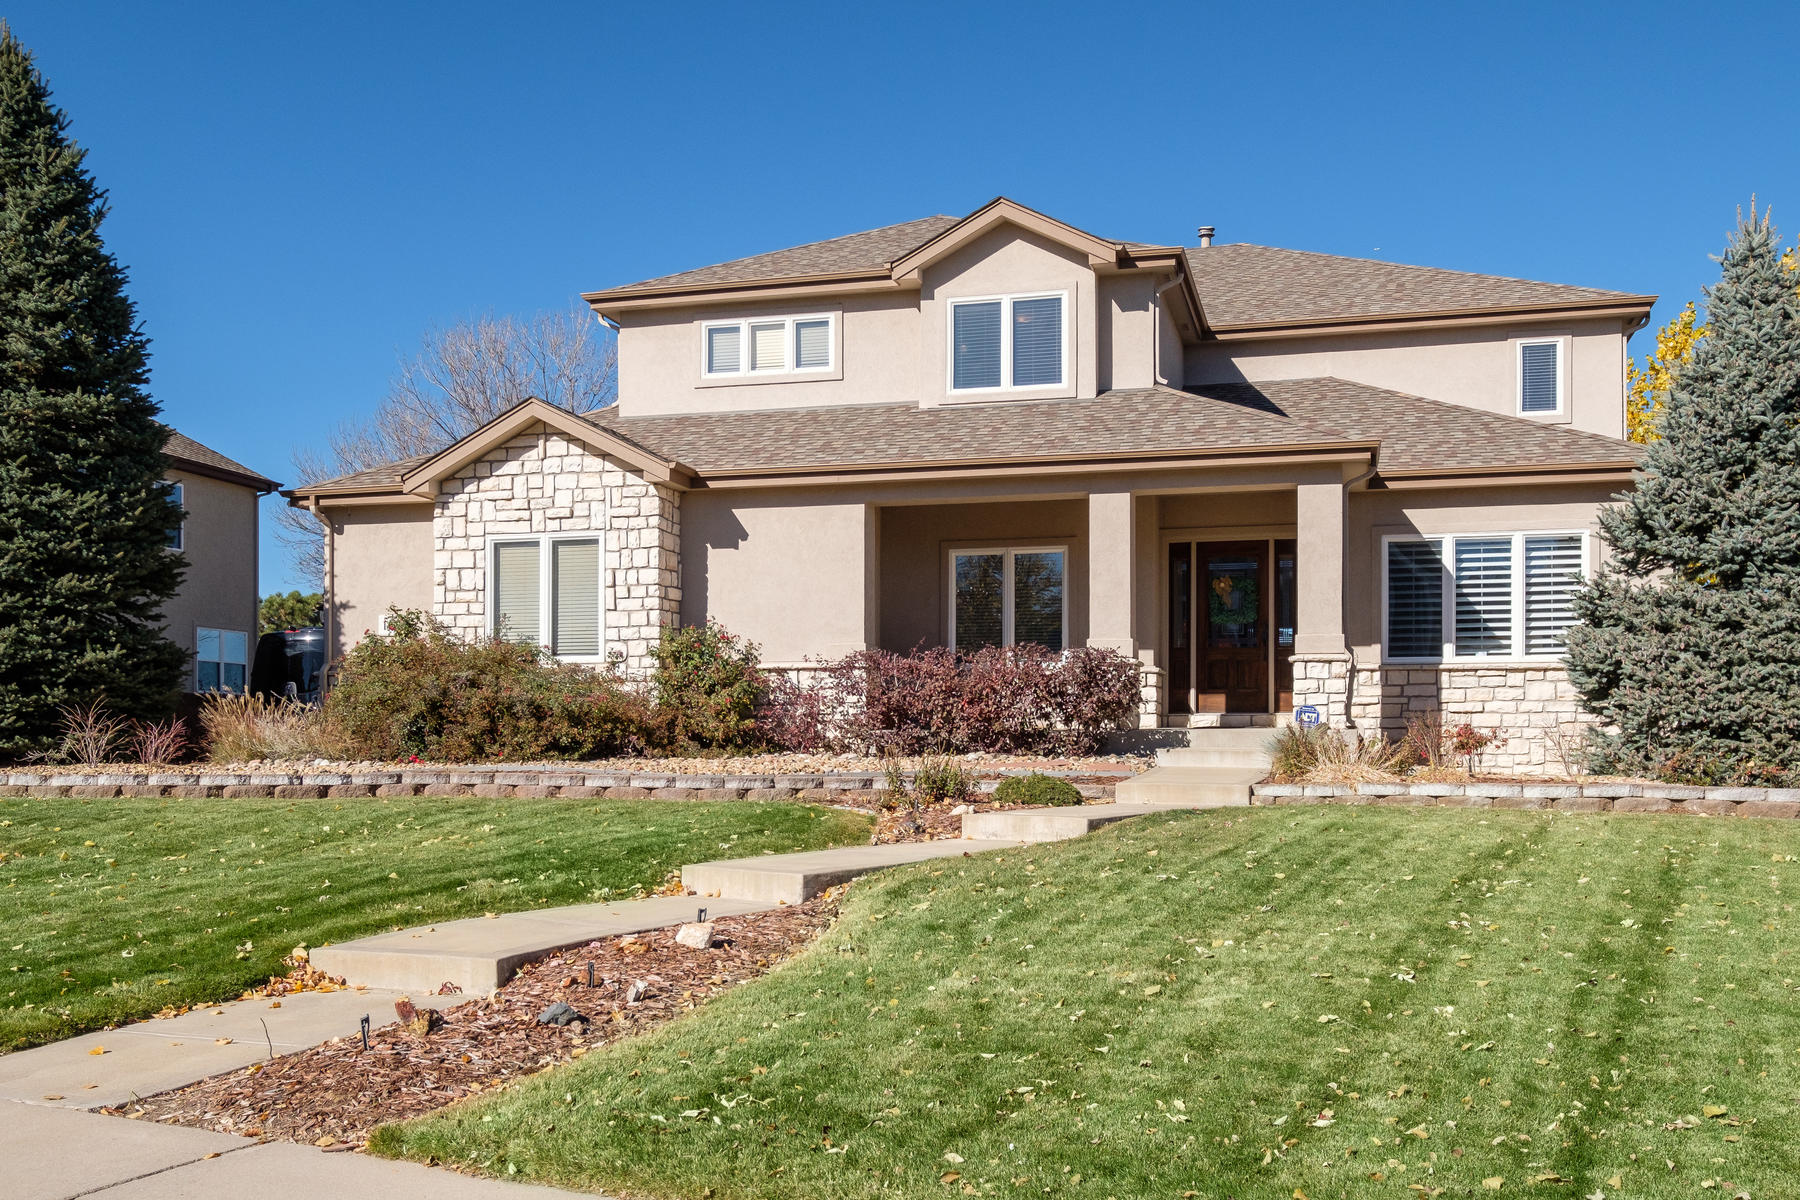 Single Family Home for Active at The perfect floor plan custom built by Virden Homes sitting on 1/3 acres! 1411 Meyerwood Cir Highlands Ranch, Colorado 80129 United States